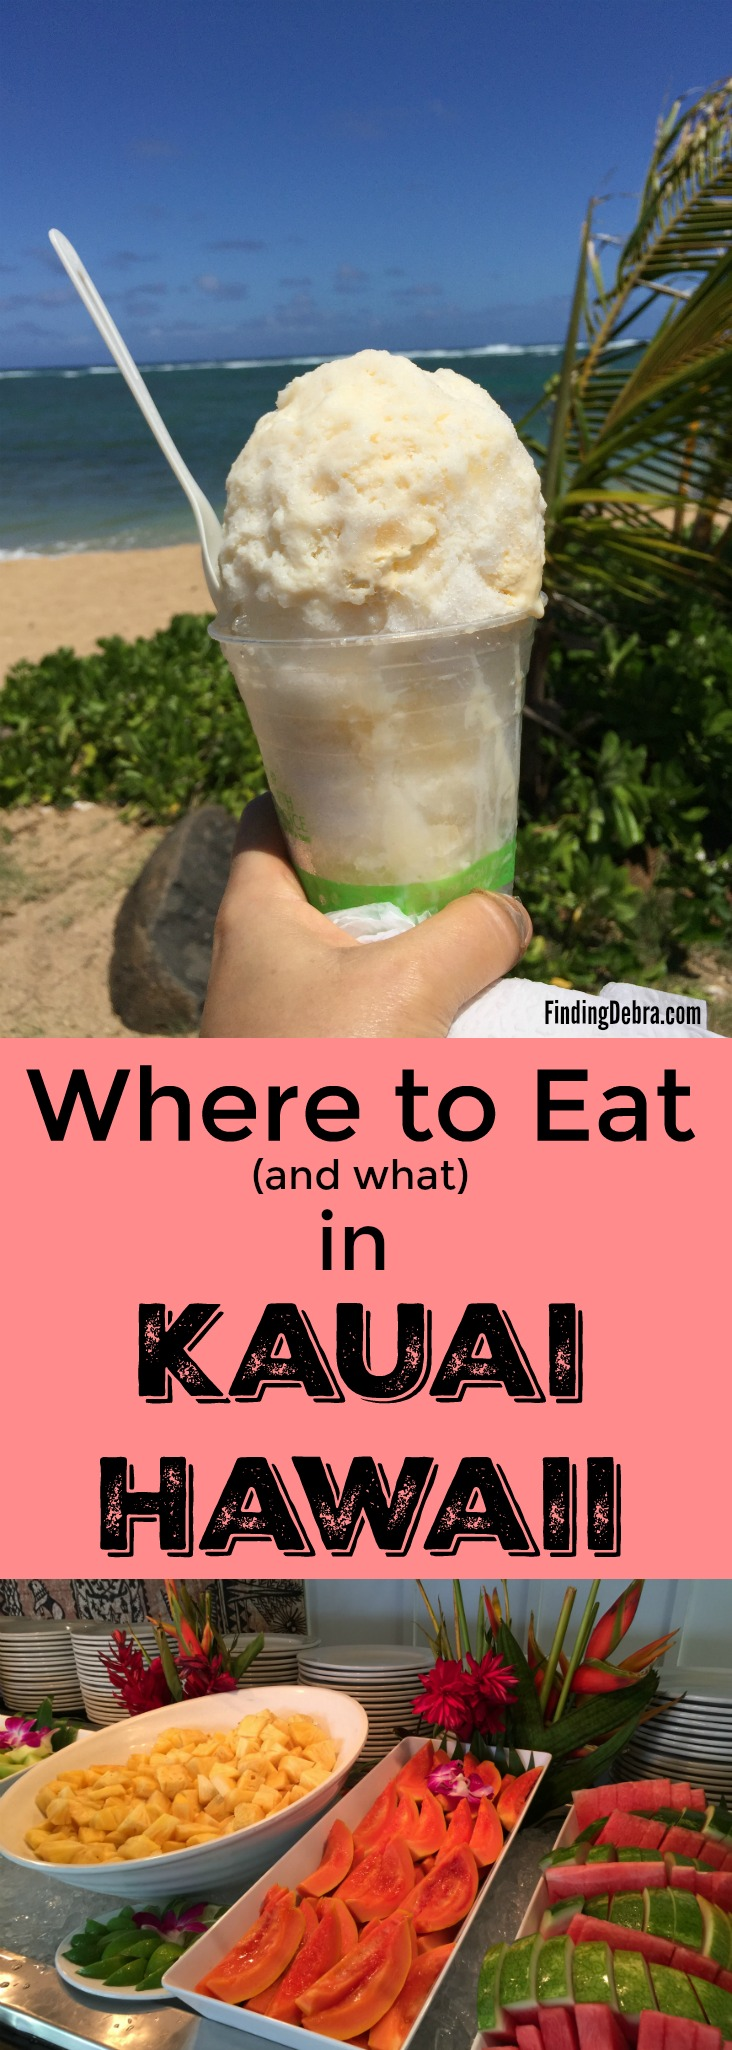 Where to eat and what in Kauai Hawaii